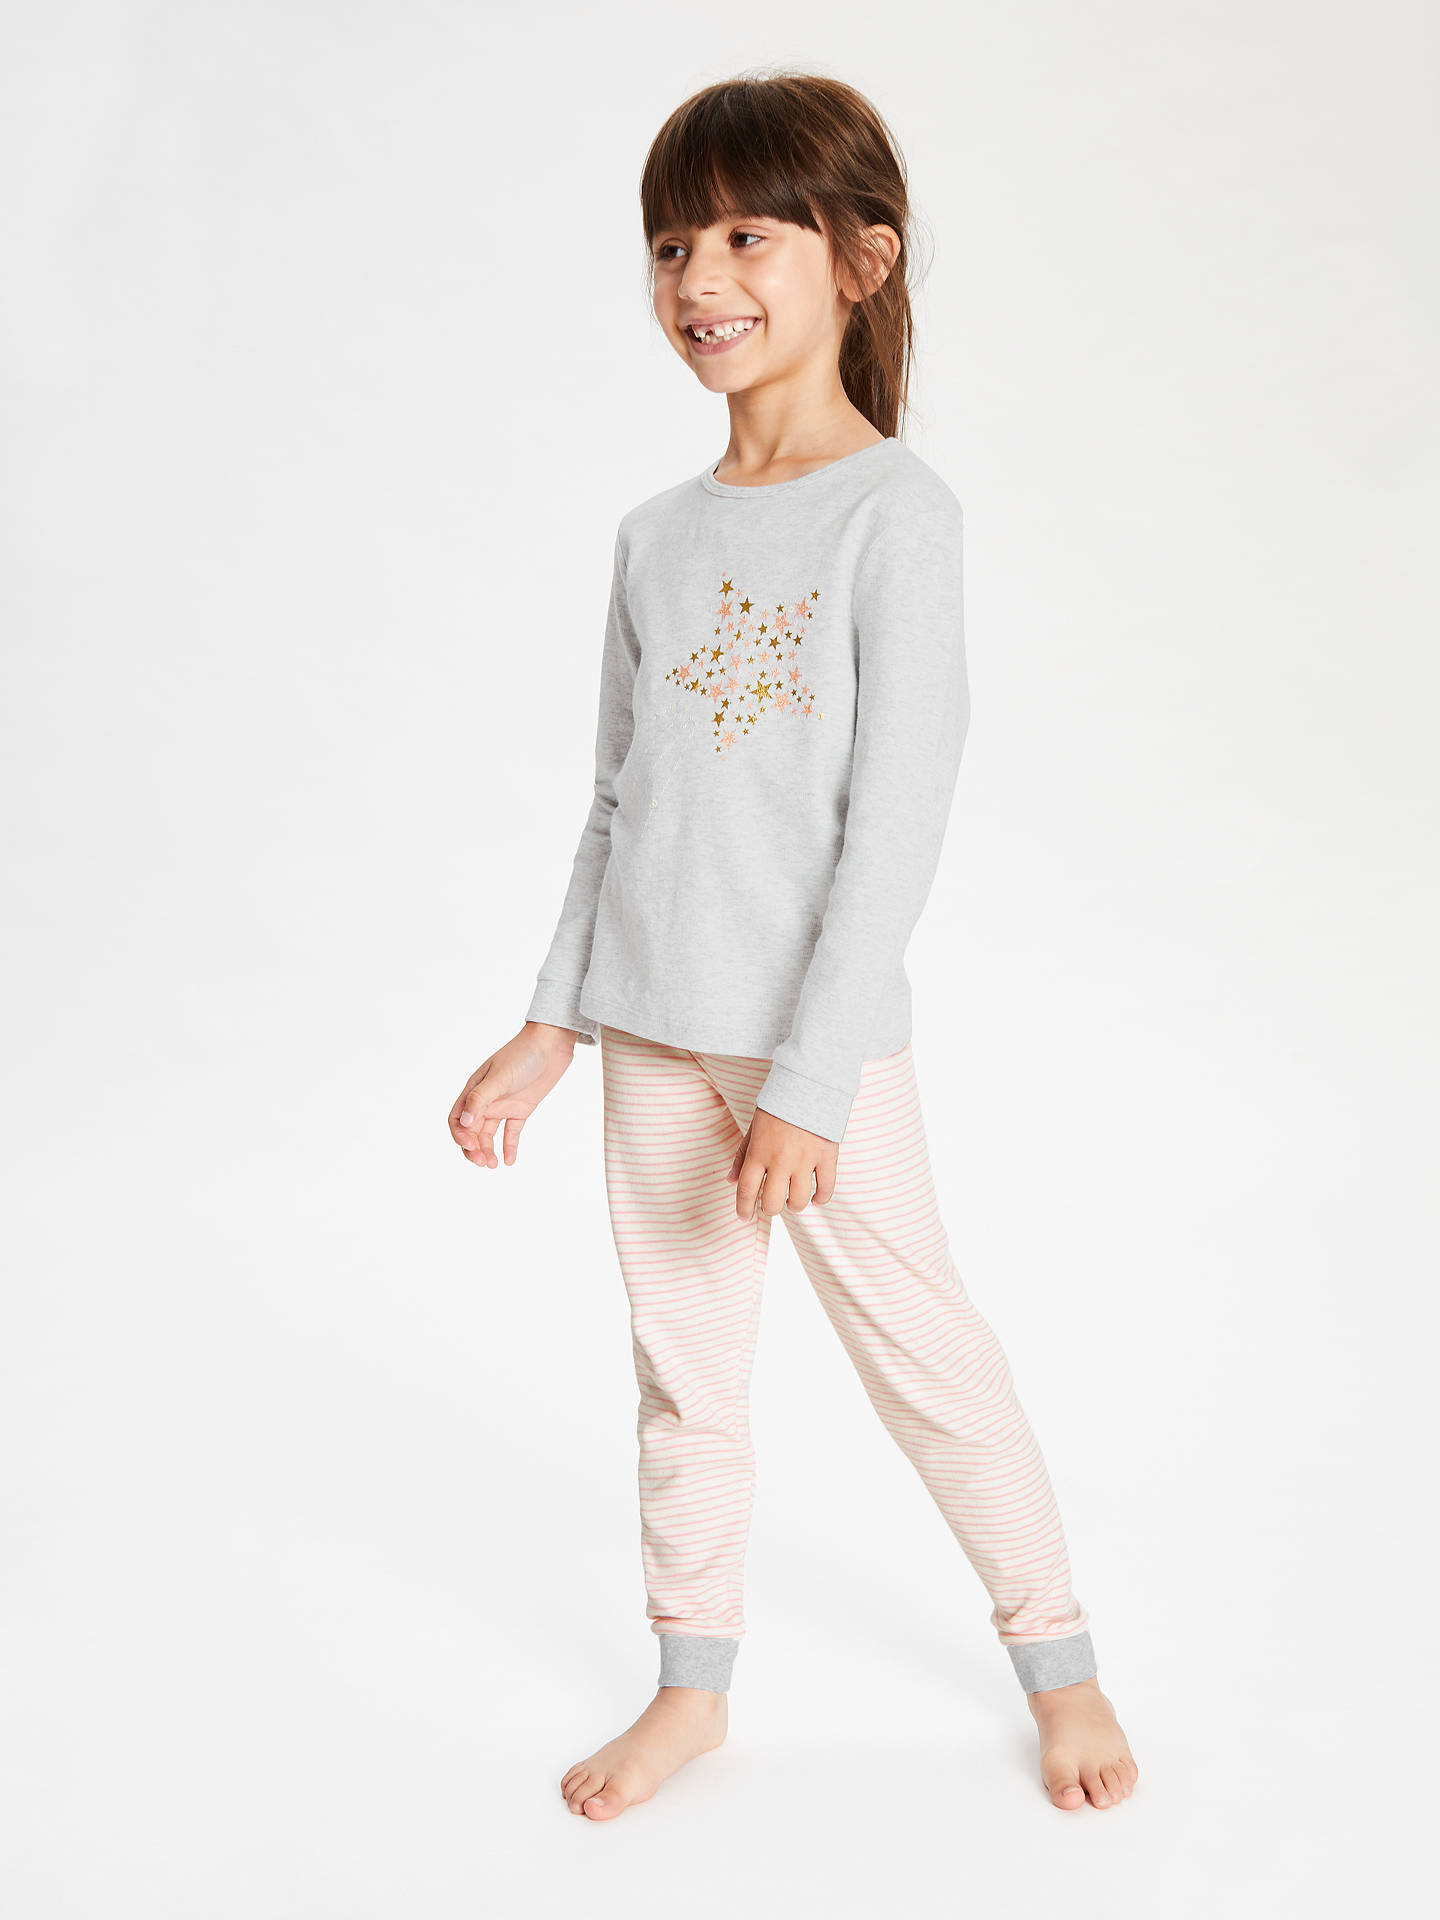 Buy John Lewis & Partners Girls' Placement Star Pyjamas, Grey, 6 years Online at johnlewis.com